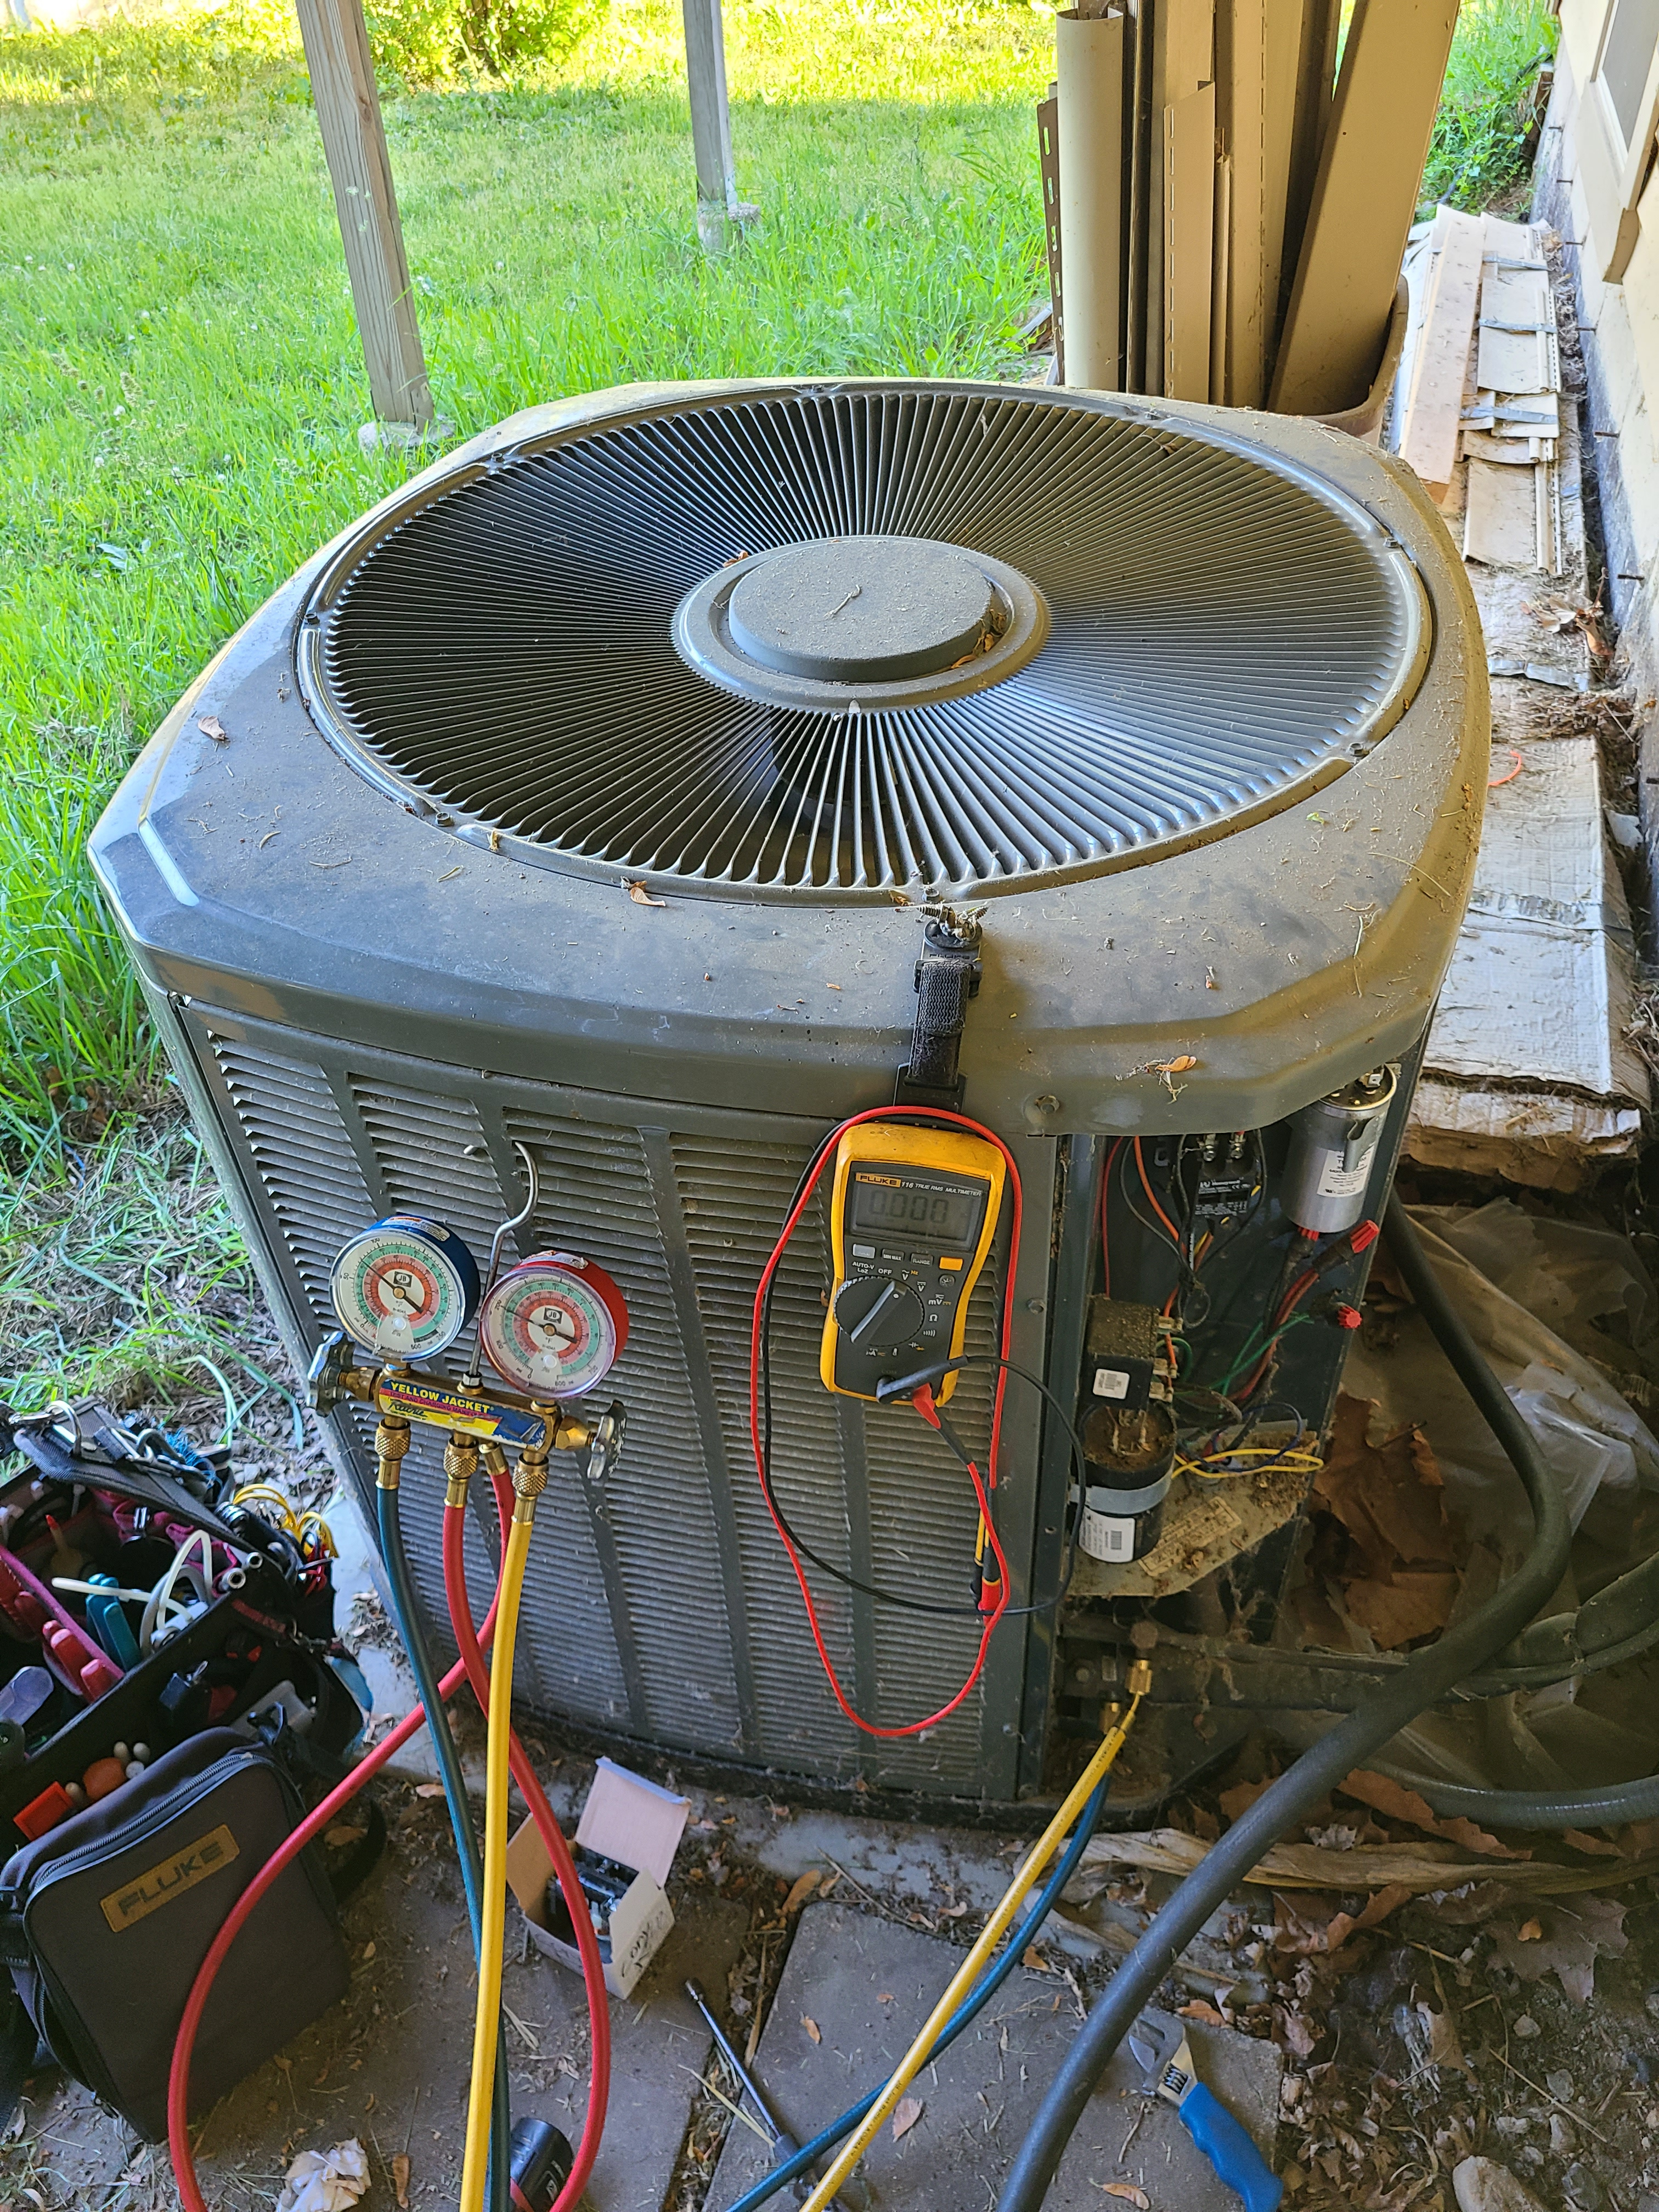 Trane ac no cooling issues diagnosed and repaired, then system cleaned and checked and ready for summer.